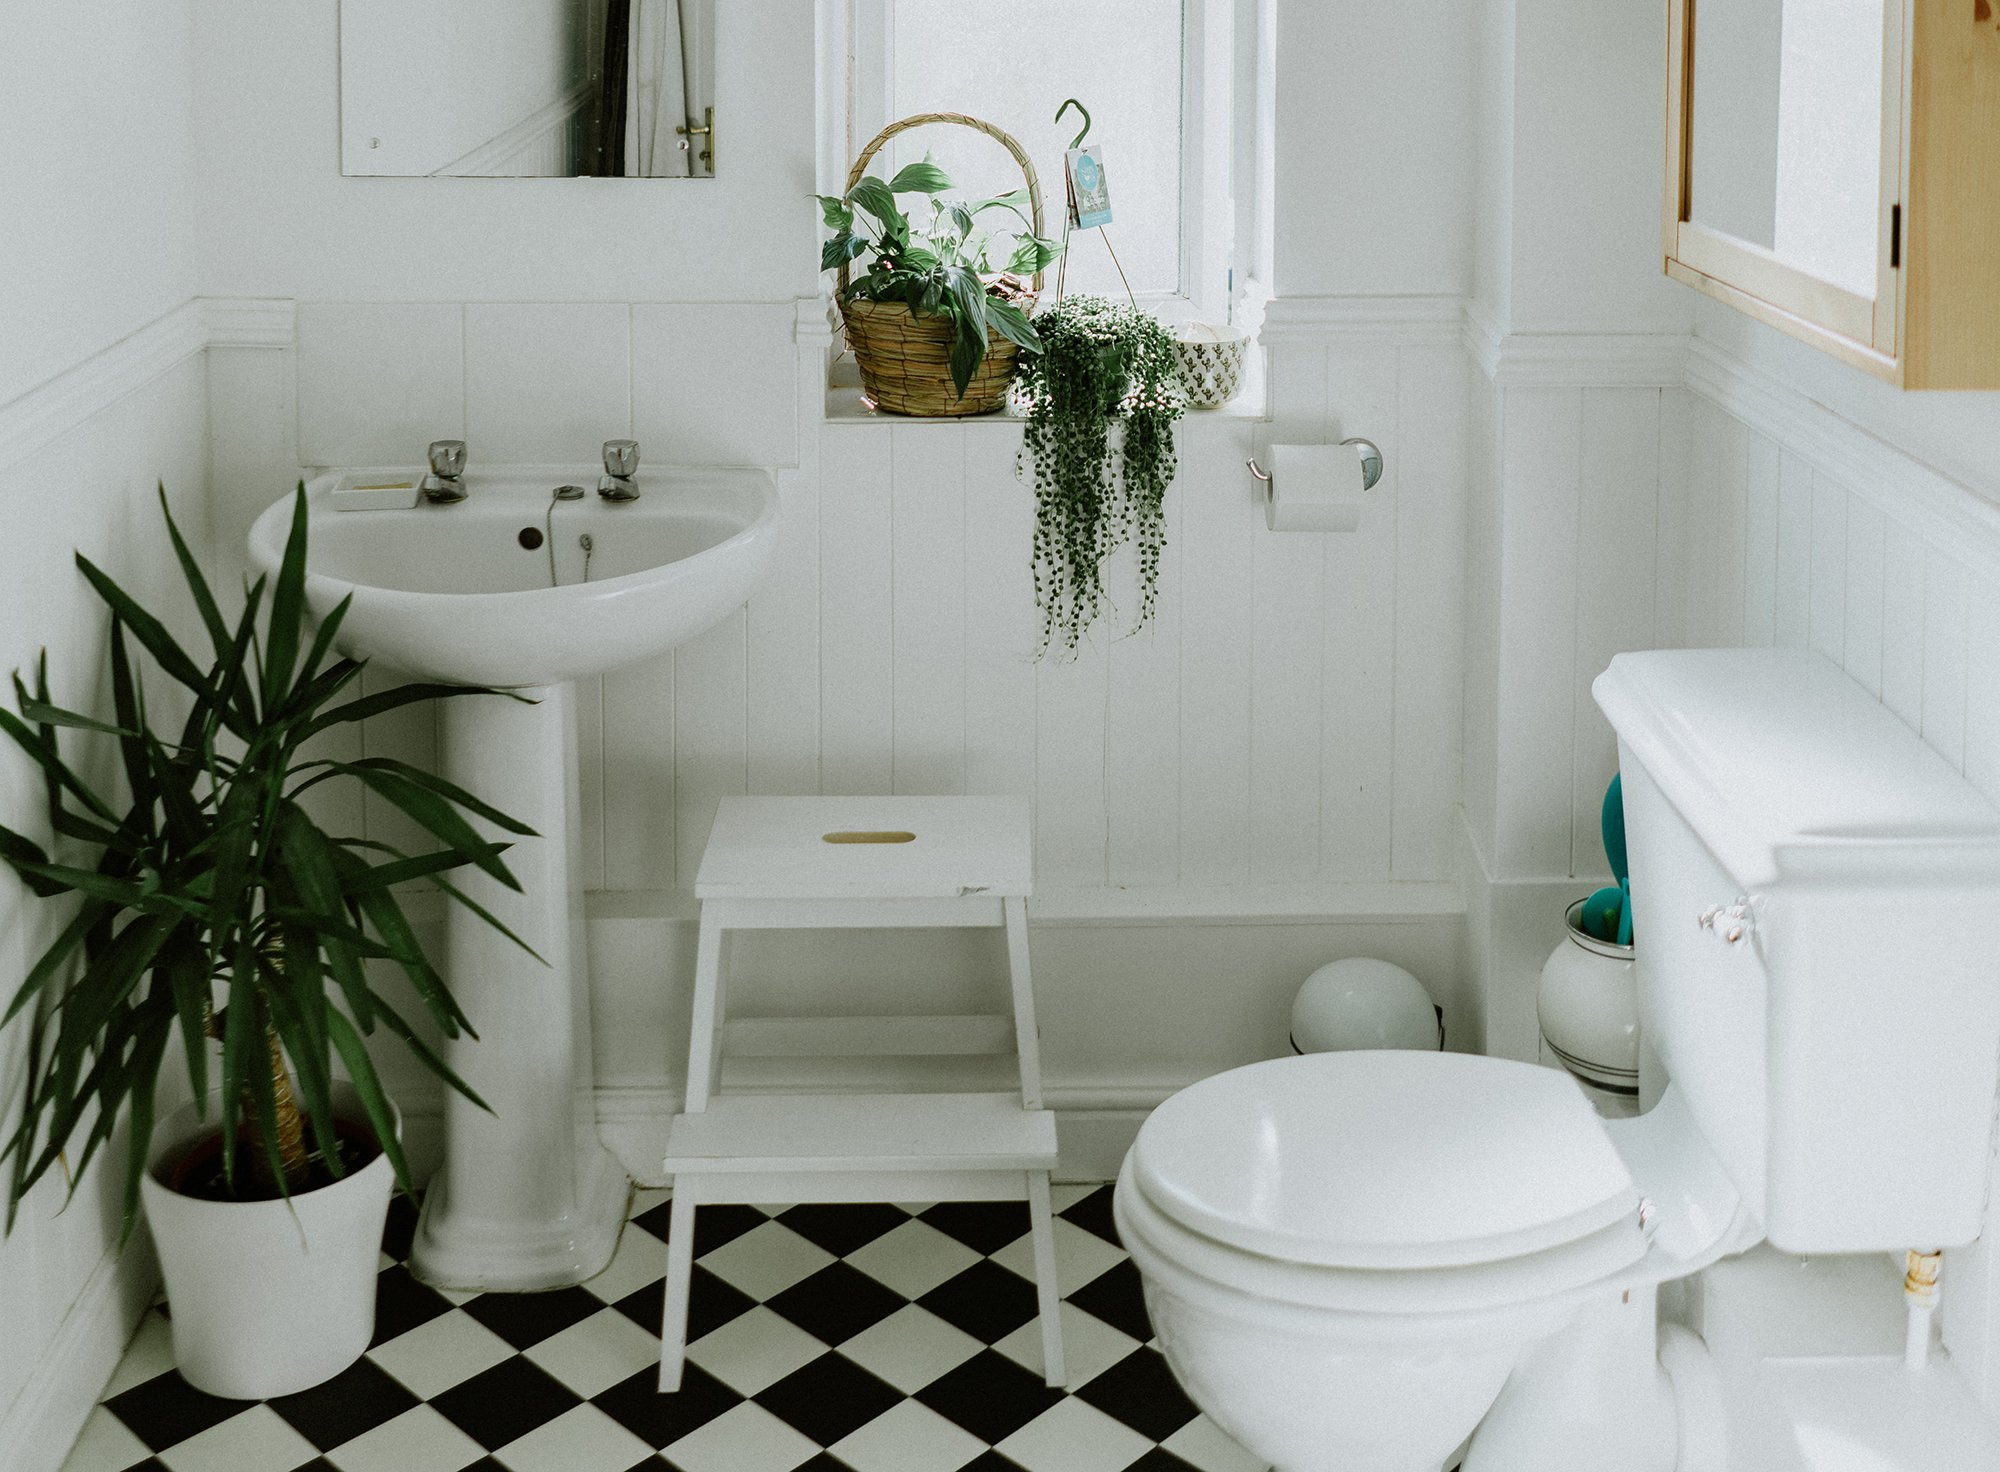 The 20 best plants for bathrooms   20sqft